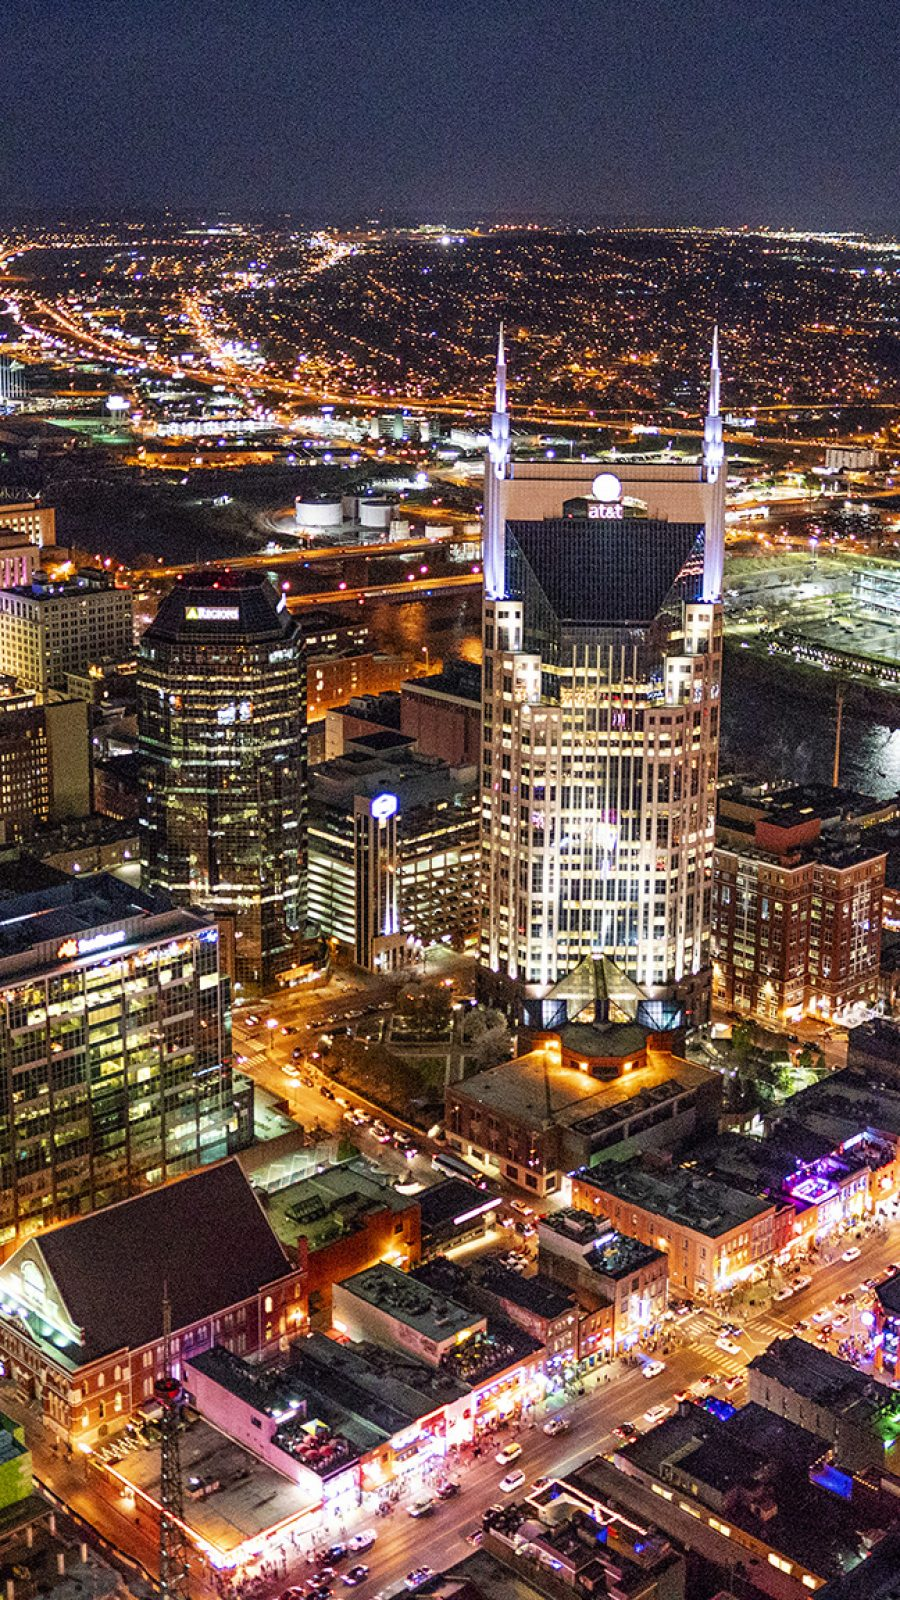 Aerial photo of Downtown Nashville including the Titans Football Stadium.  (Photo by Joe Howell)